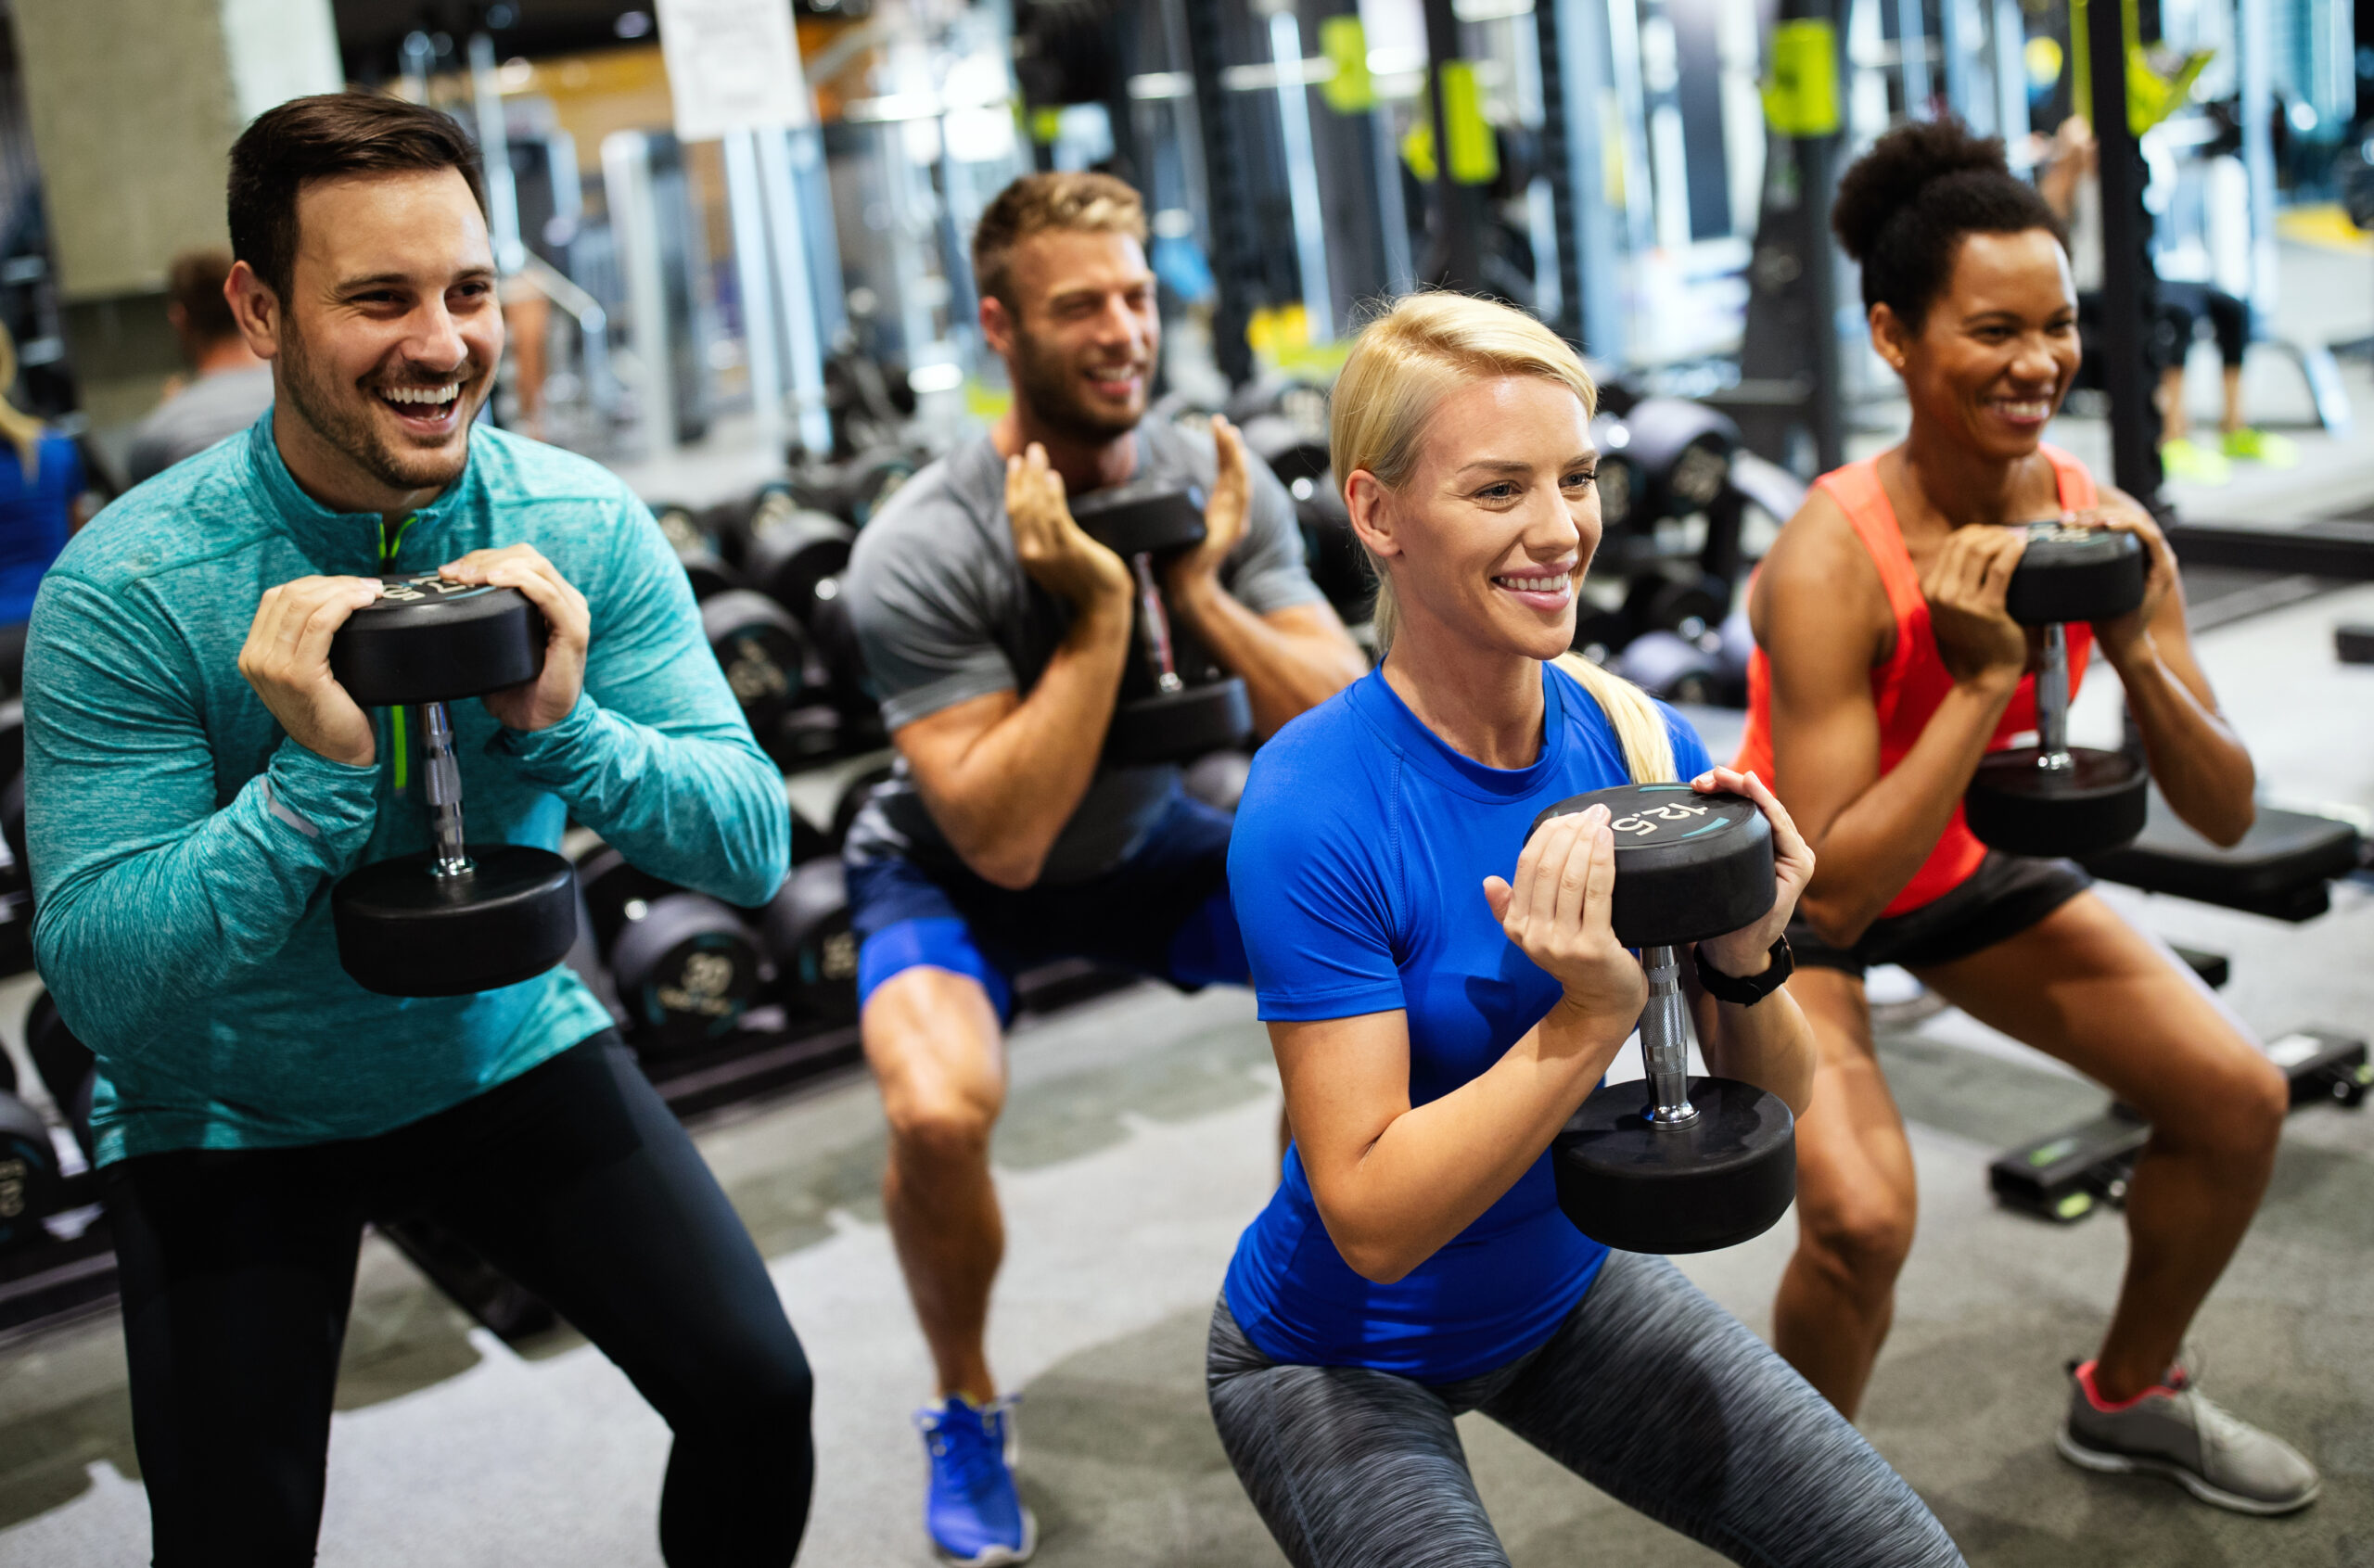 TruSelf Sporting Club Group Exercise Class image gym